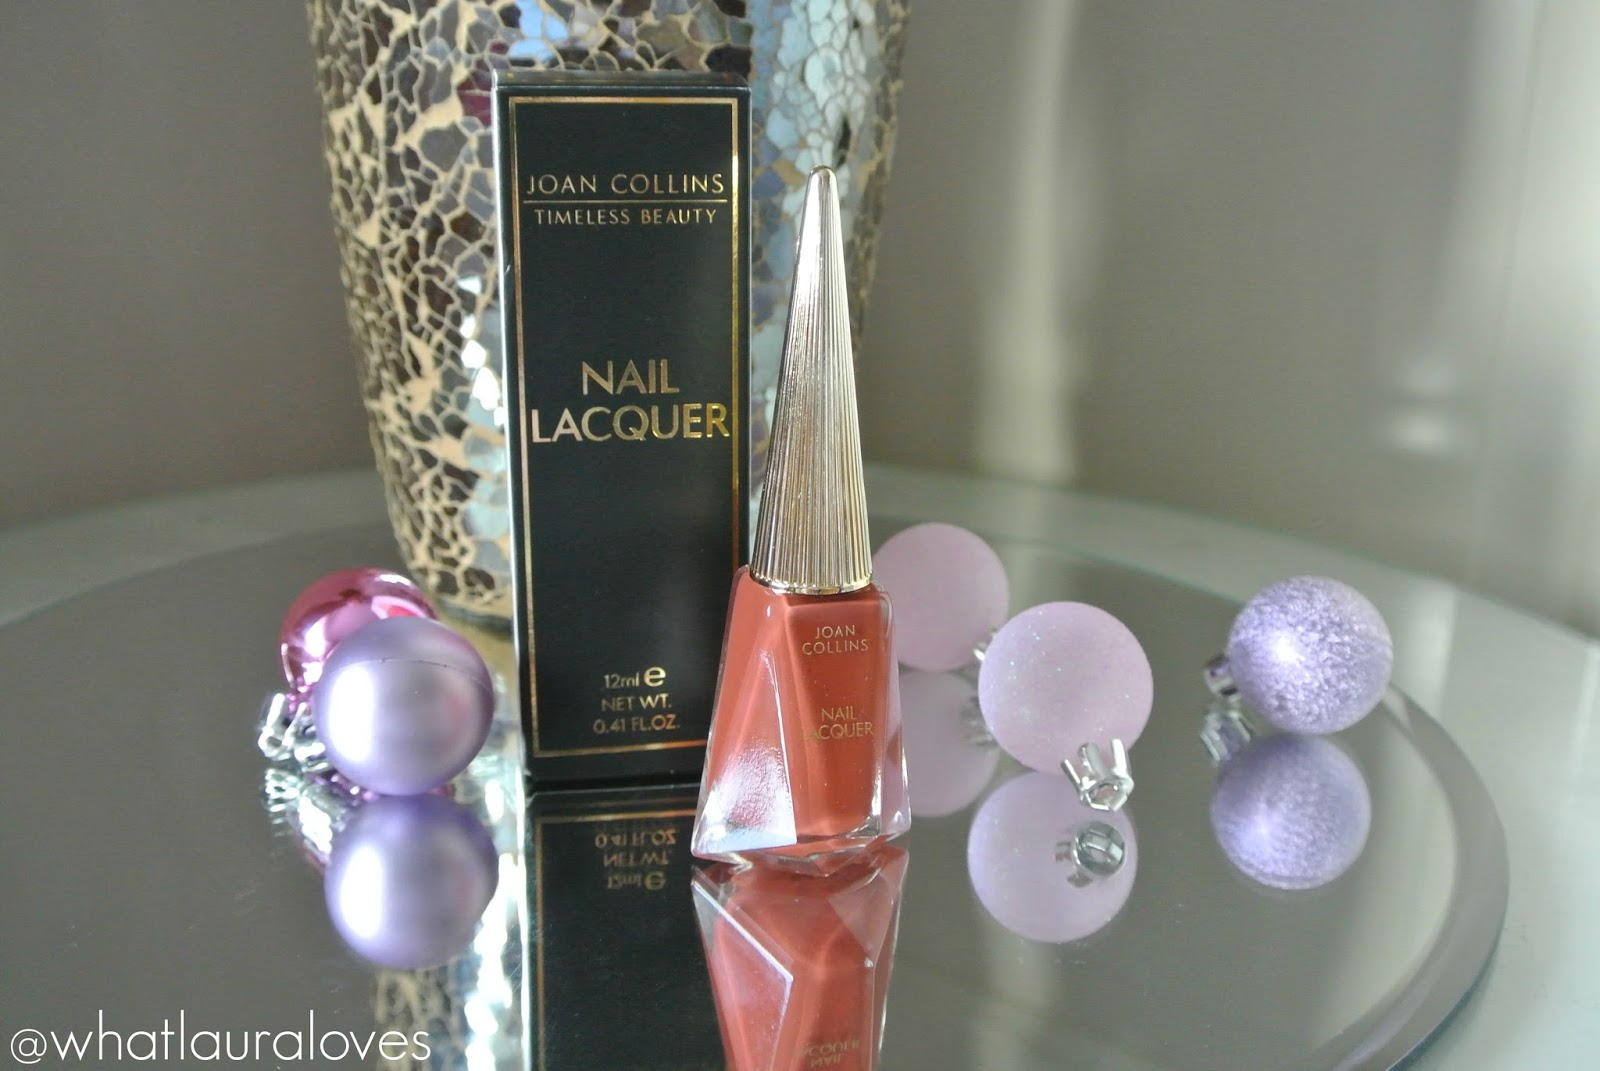 Joan Collins Timeless Beauty Nail Lacquer in Amanda Review